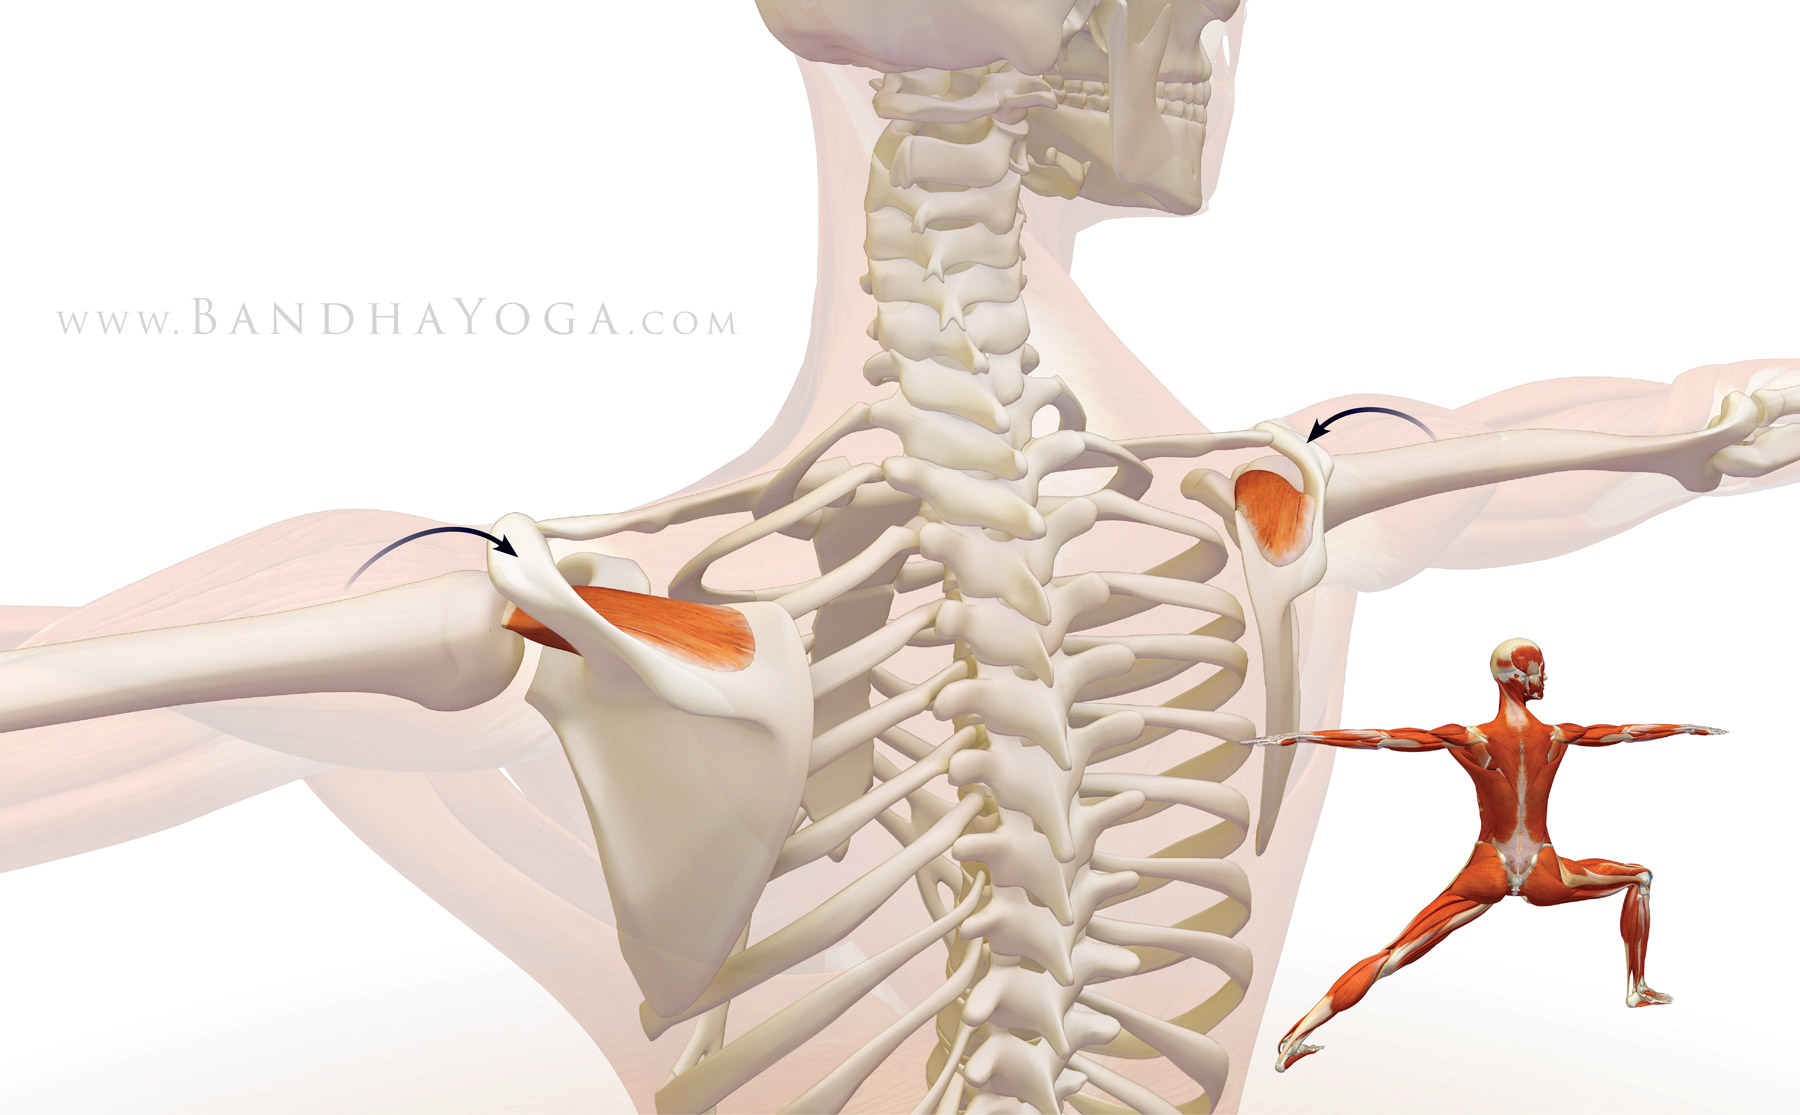 Shoulder Biomechanics Part 3 The Supraspinatus Muscle Yogauonline